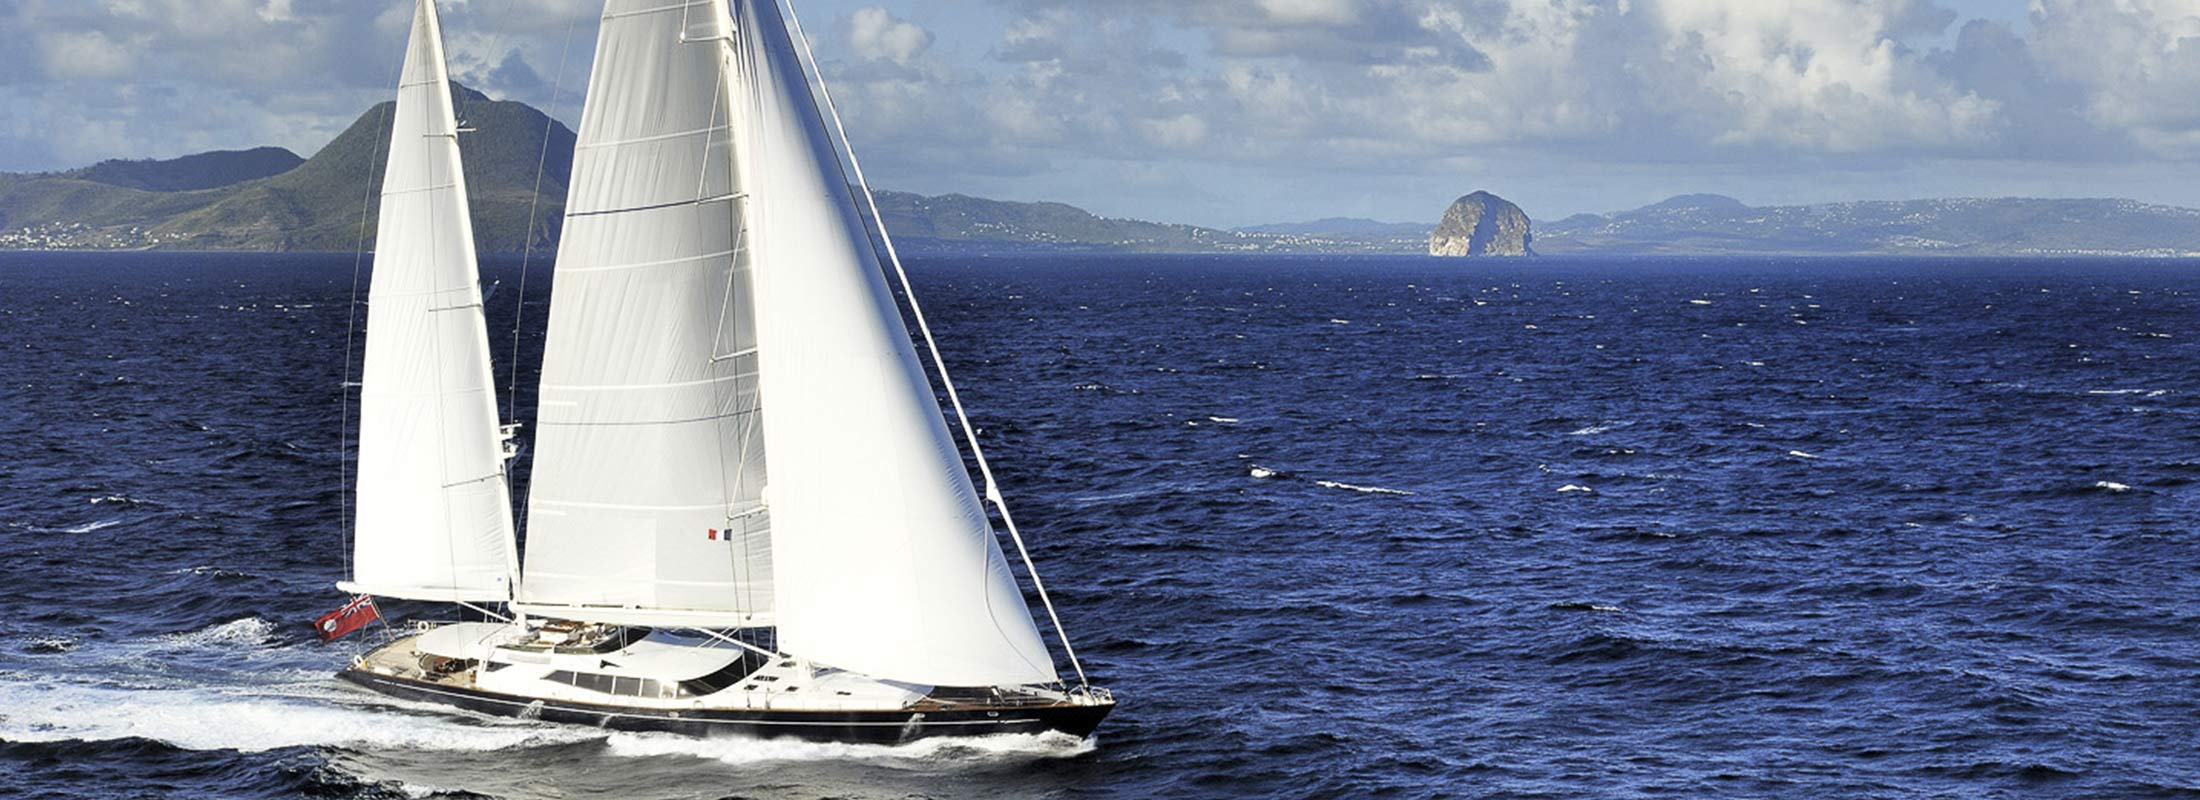 Drumbeat Sailing Yacht for Charter Norway Arctic slider 1